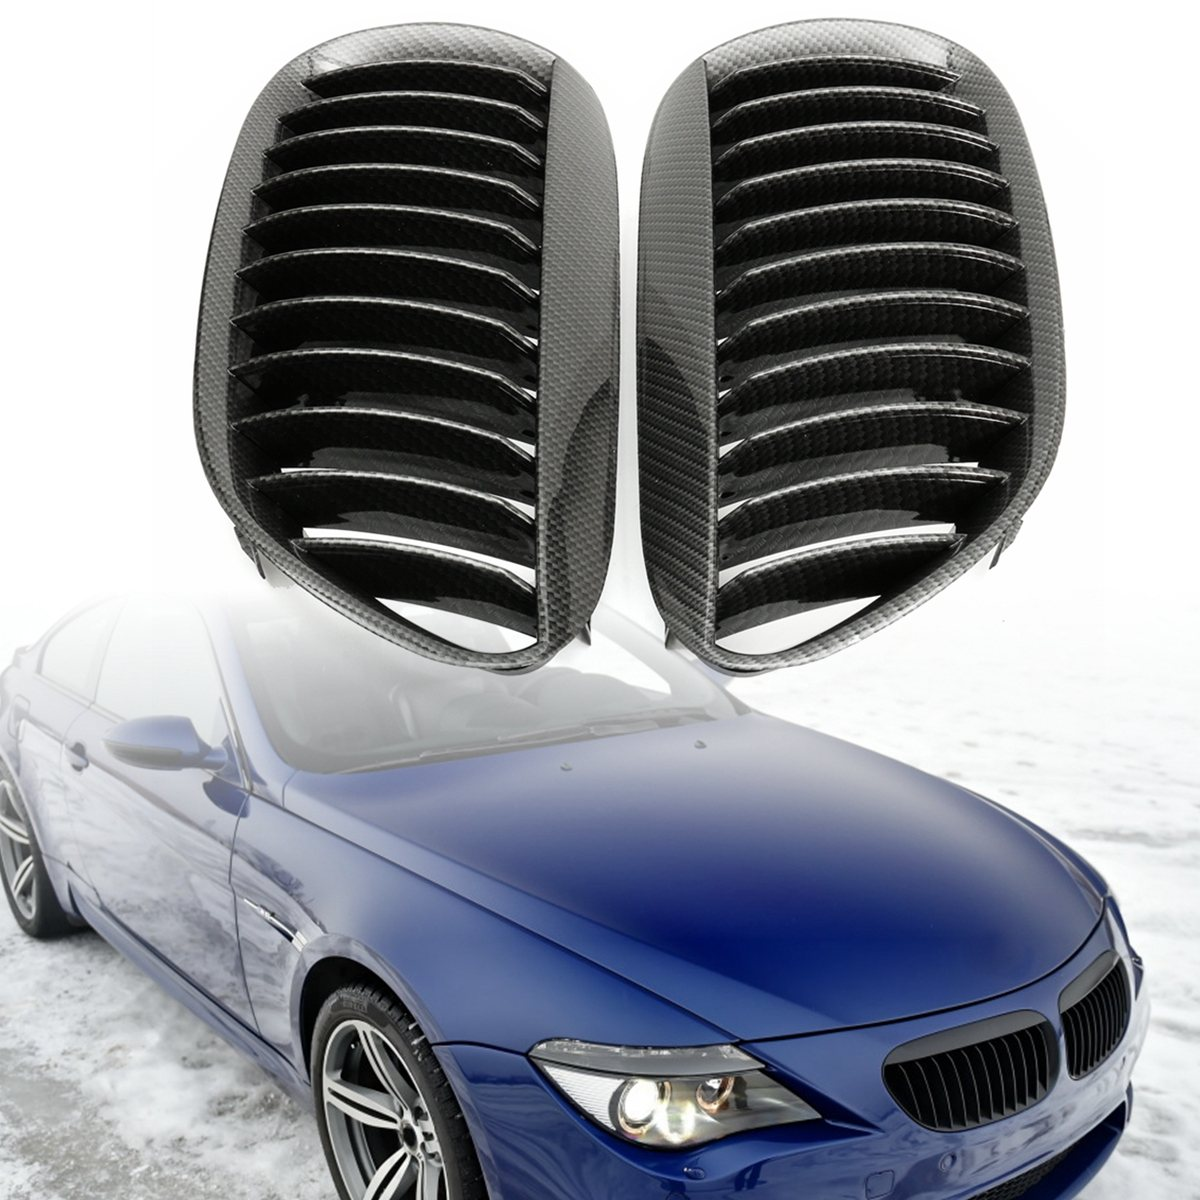 Pair Carbon Grain Kidney Grilles Front Right Left For BMW E63 E64 6 Series  2 Door Grille 2003 2004 2005 2006 2007 2008 2009 2010-in Racing Grills from  ...